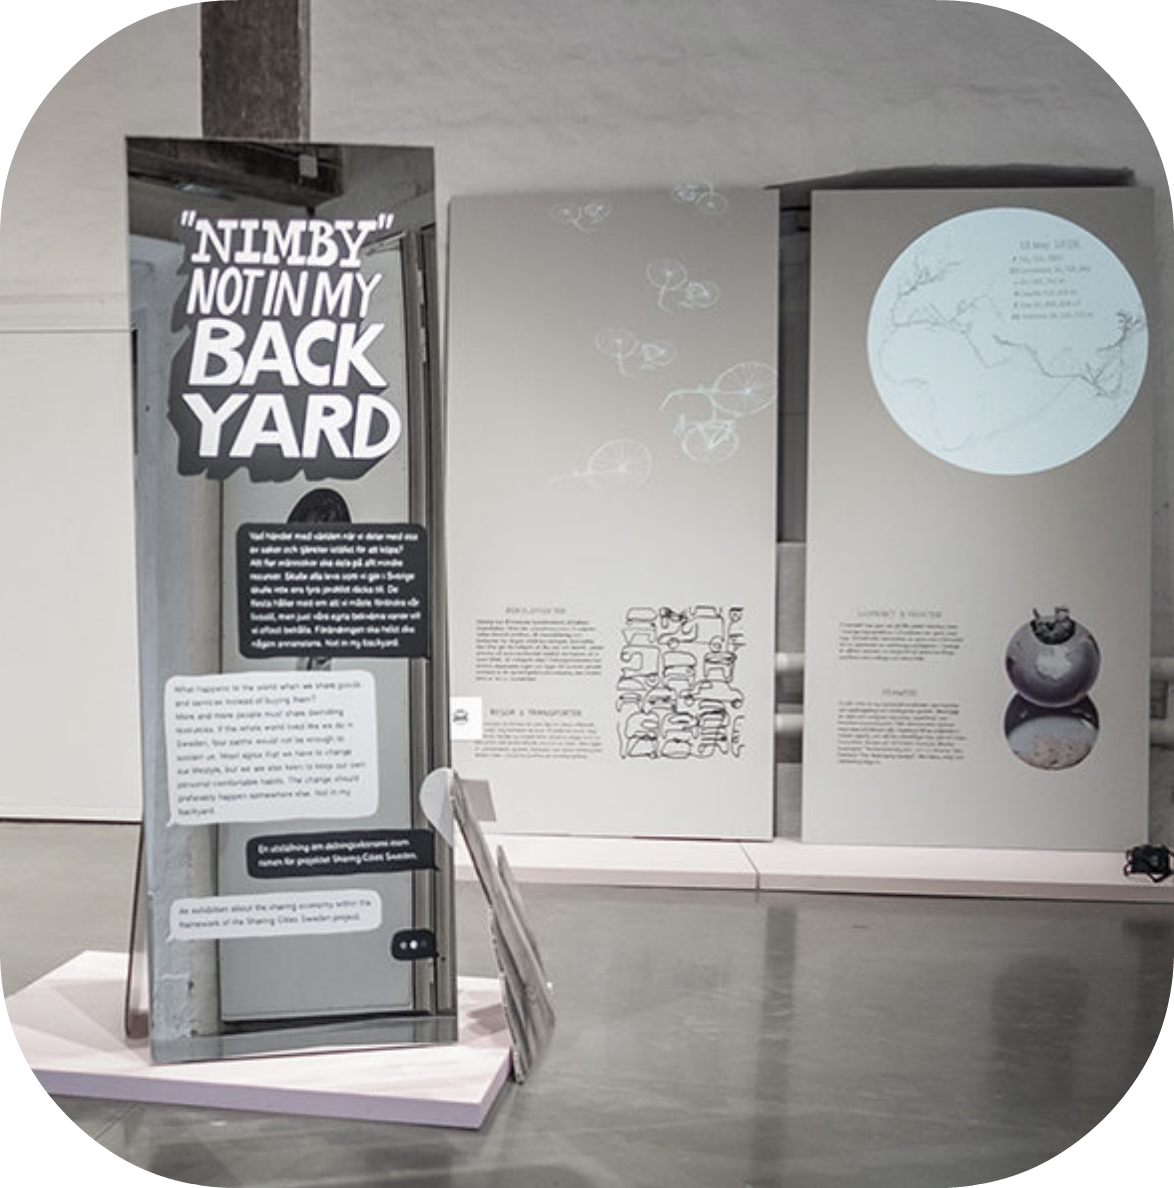 Nimby exhibition form design 2019_rounded_corners.png